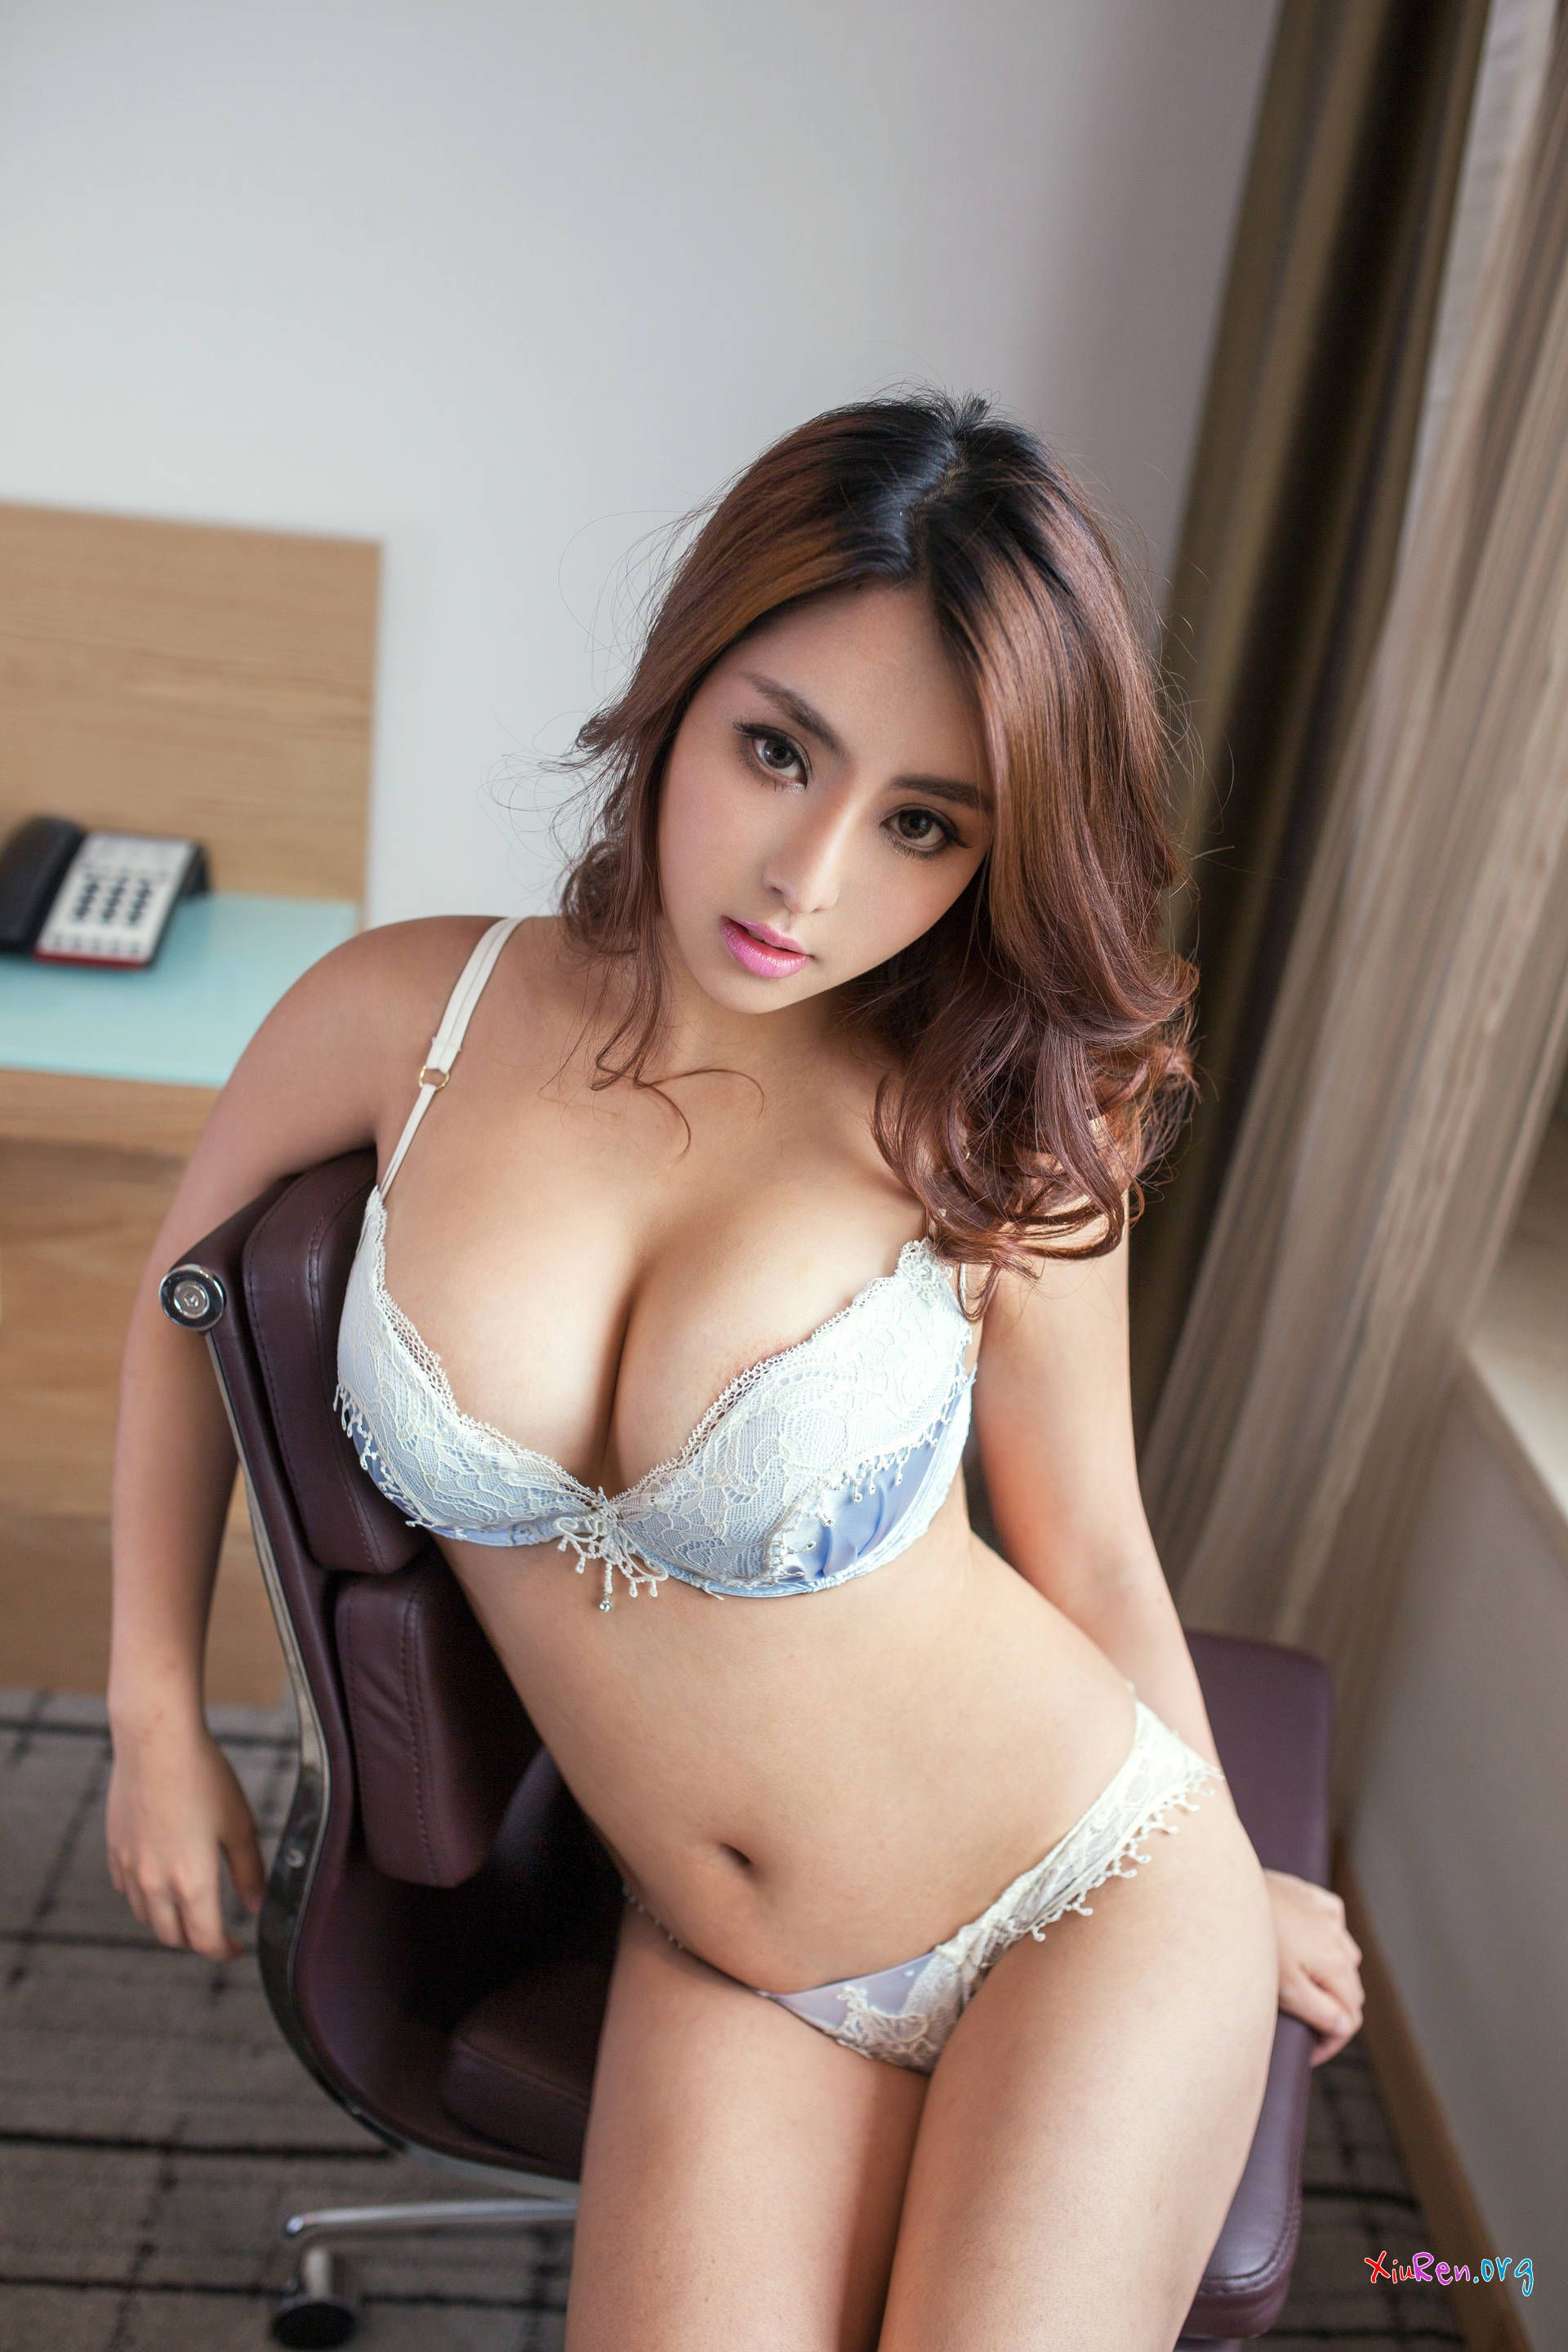 sex erotic sex yoni und lingam massage